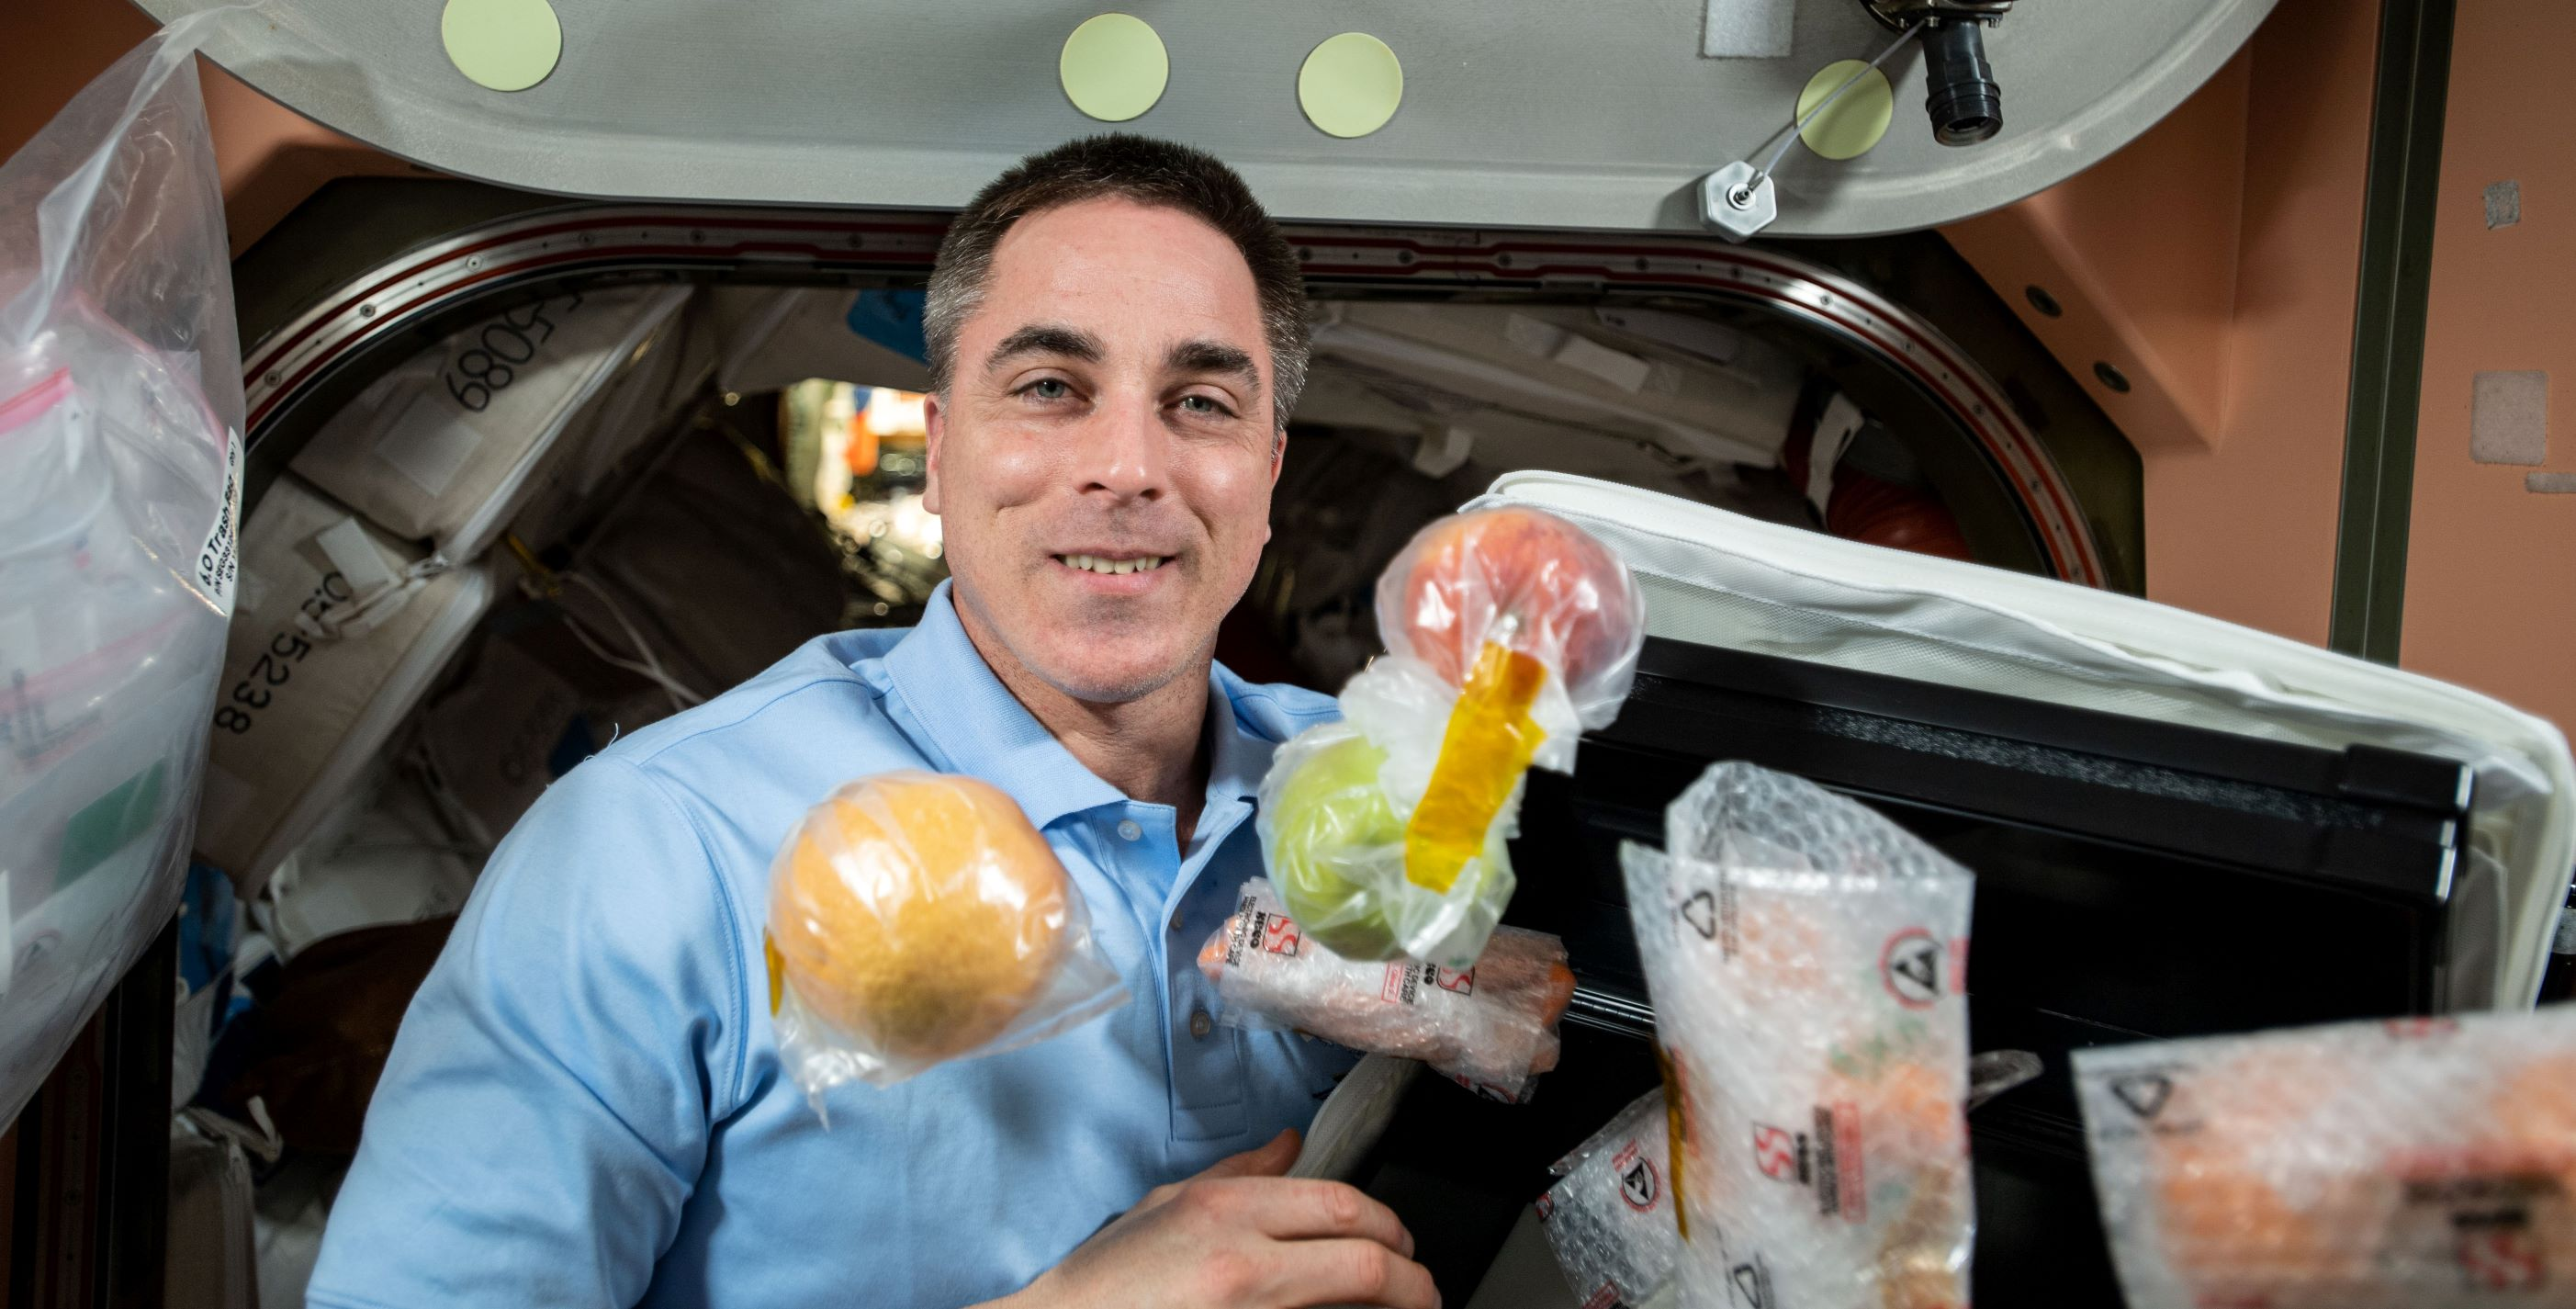 Enhanced Weight-reduction plan Could Assist Astronauts Adapt to Spaceflight